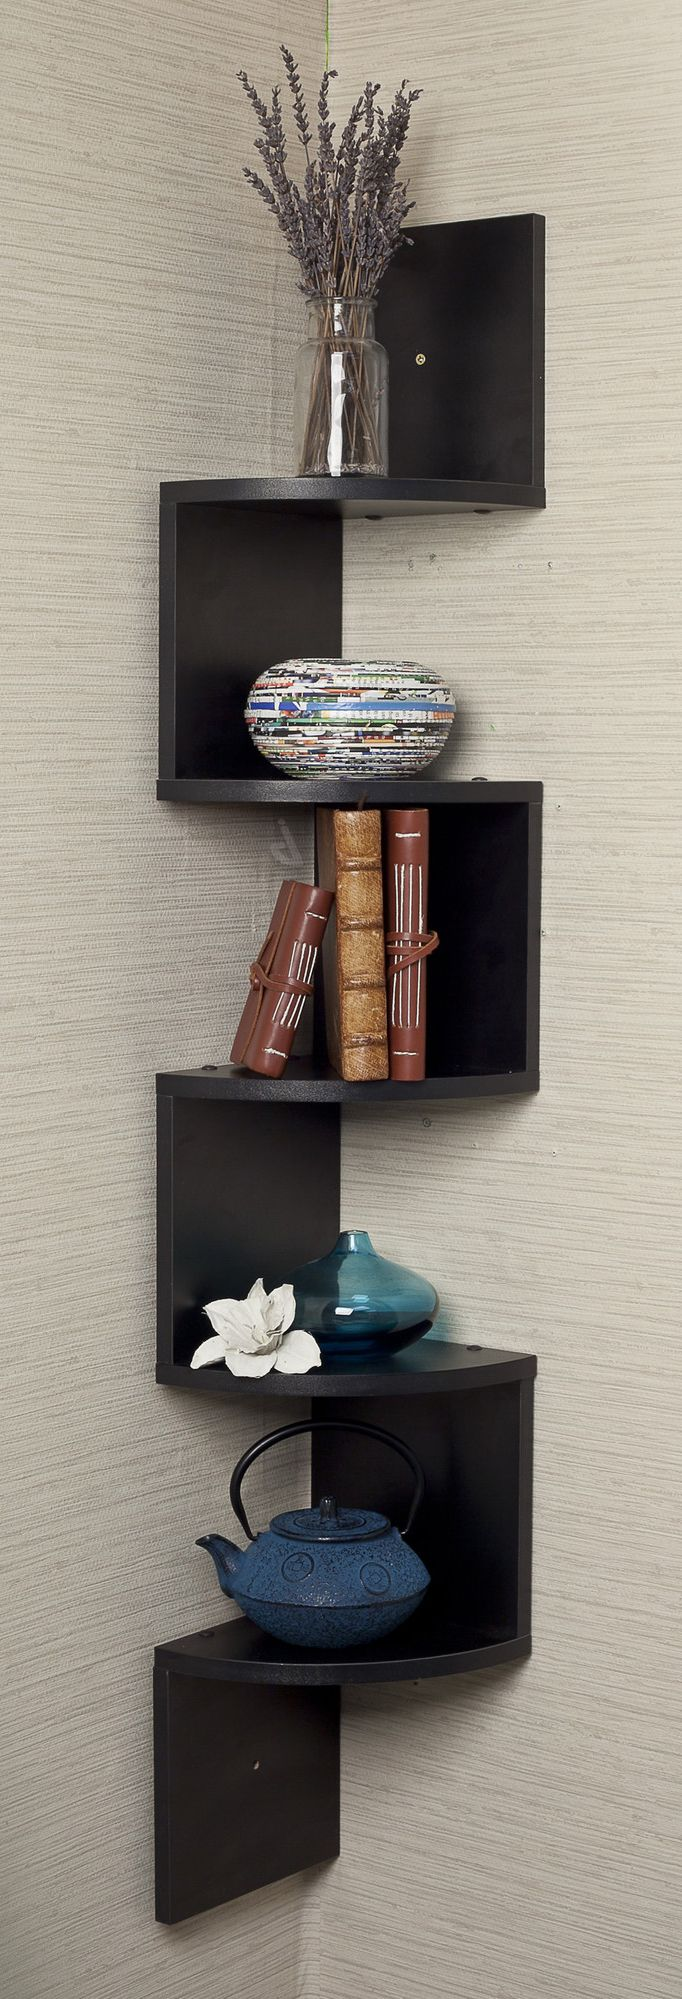 Corner zig zag wall shelf Brilliant idea Product Design